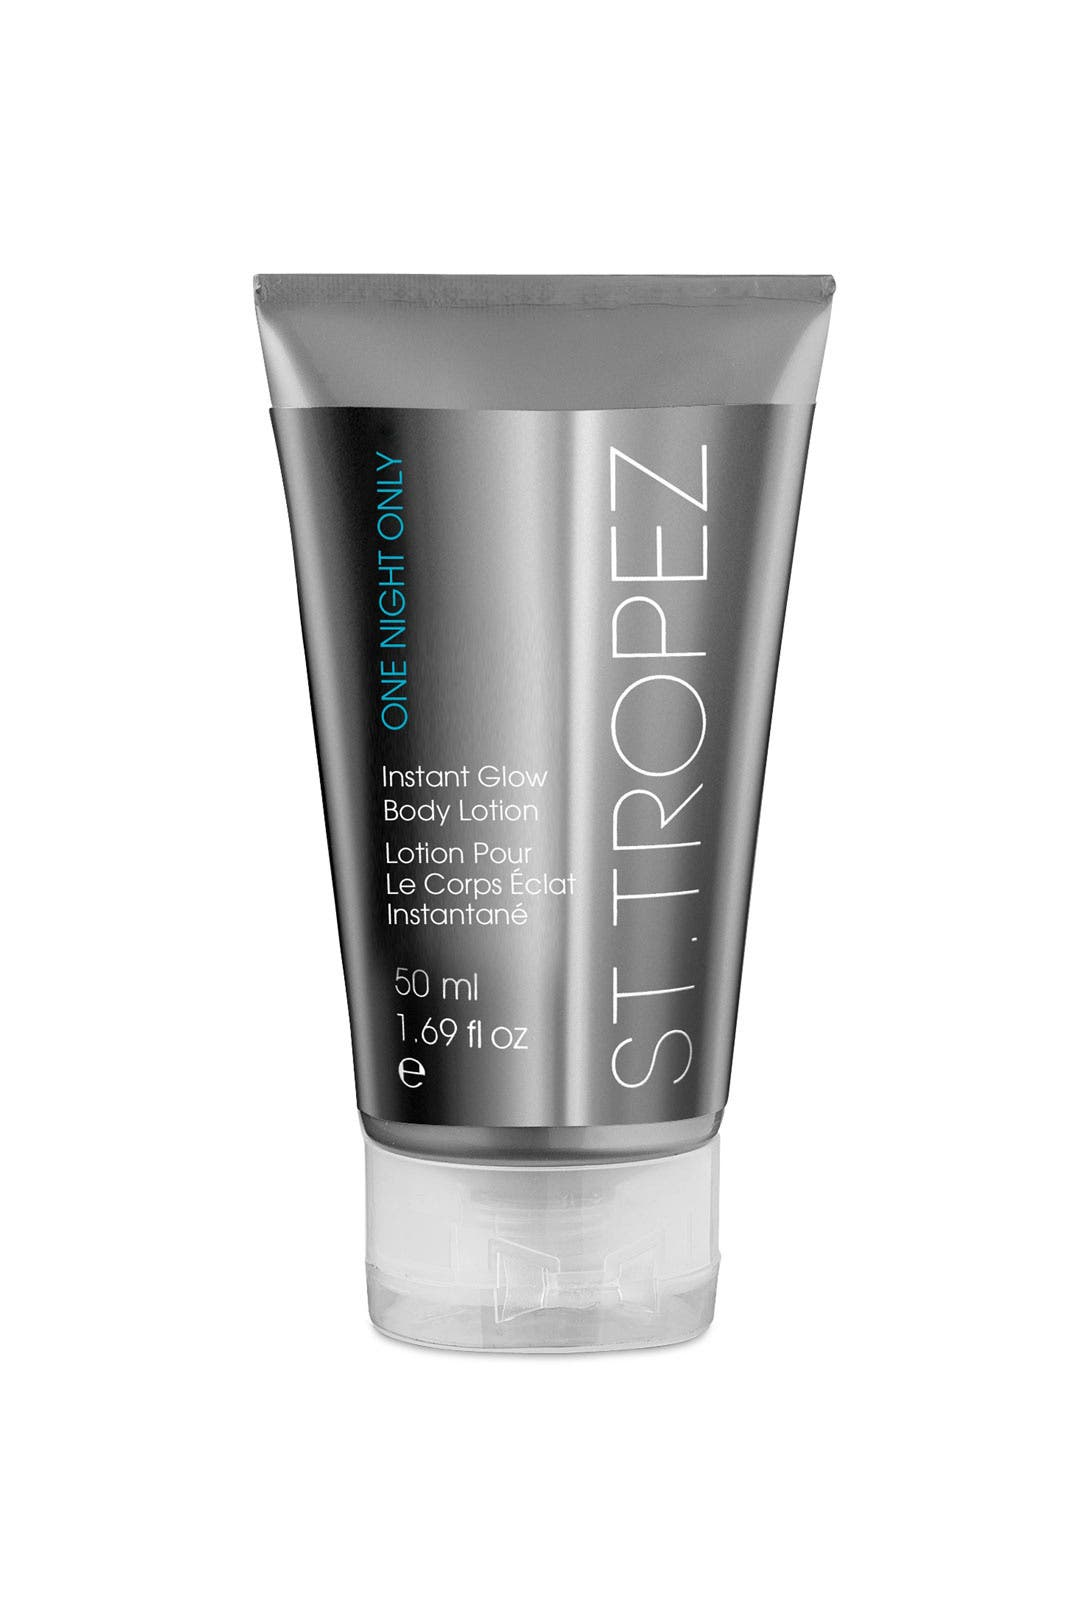 Instant Glow Body Lotion by St. Tropez